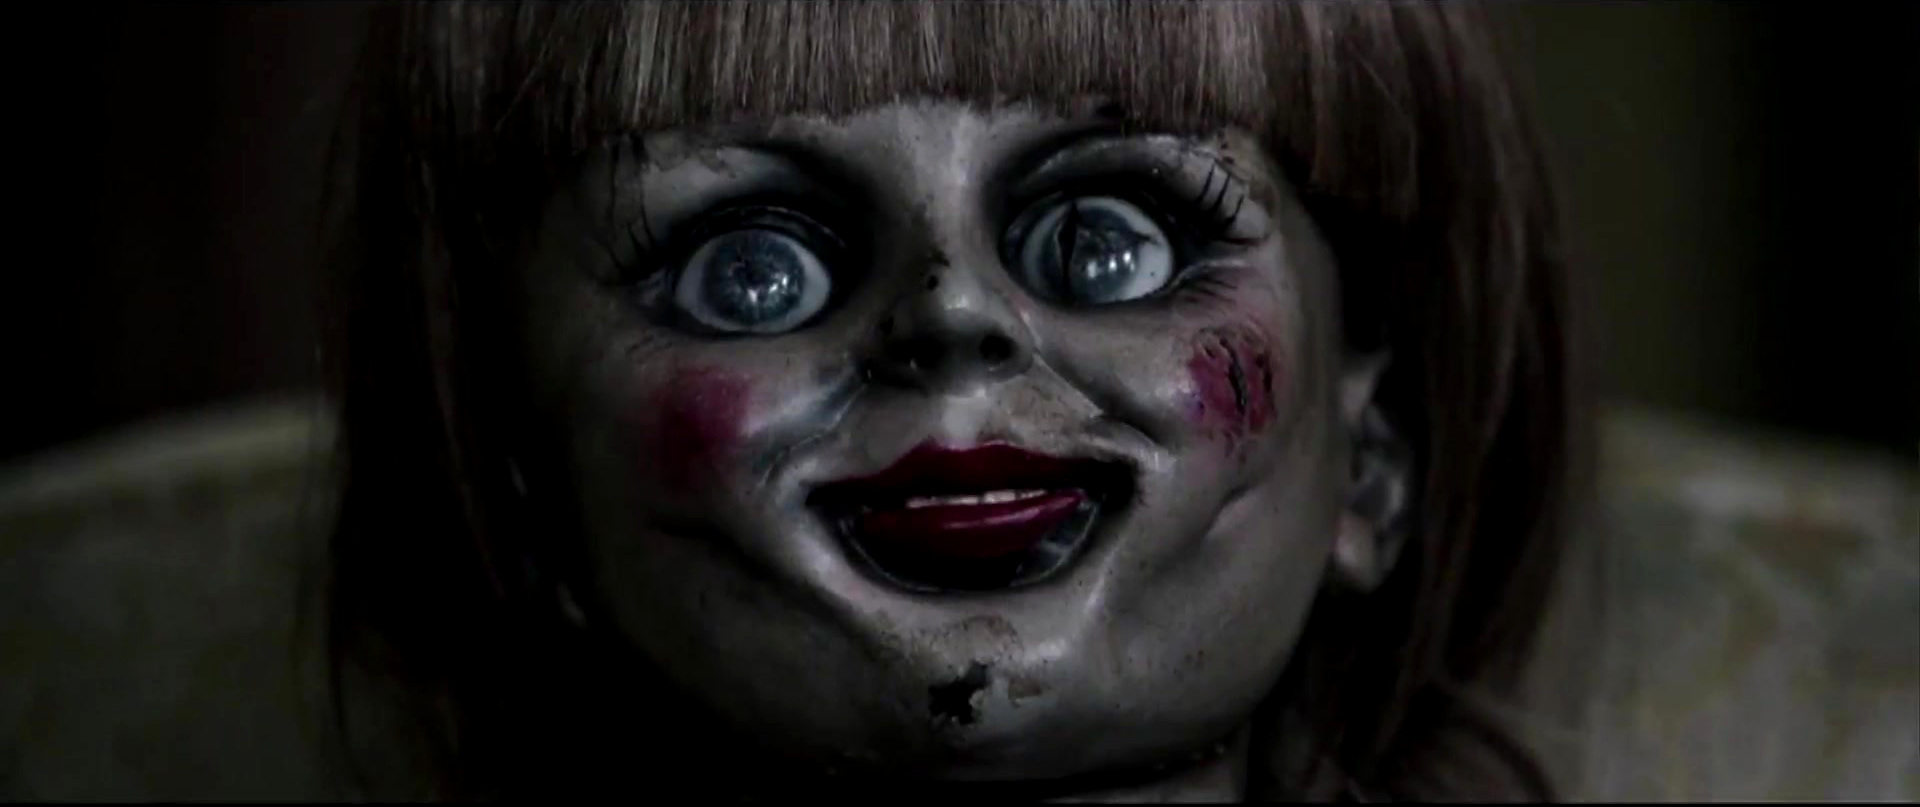 Top 6 Horror Movie Dolls That Creep Us Out